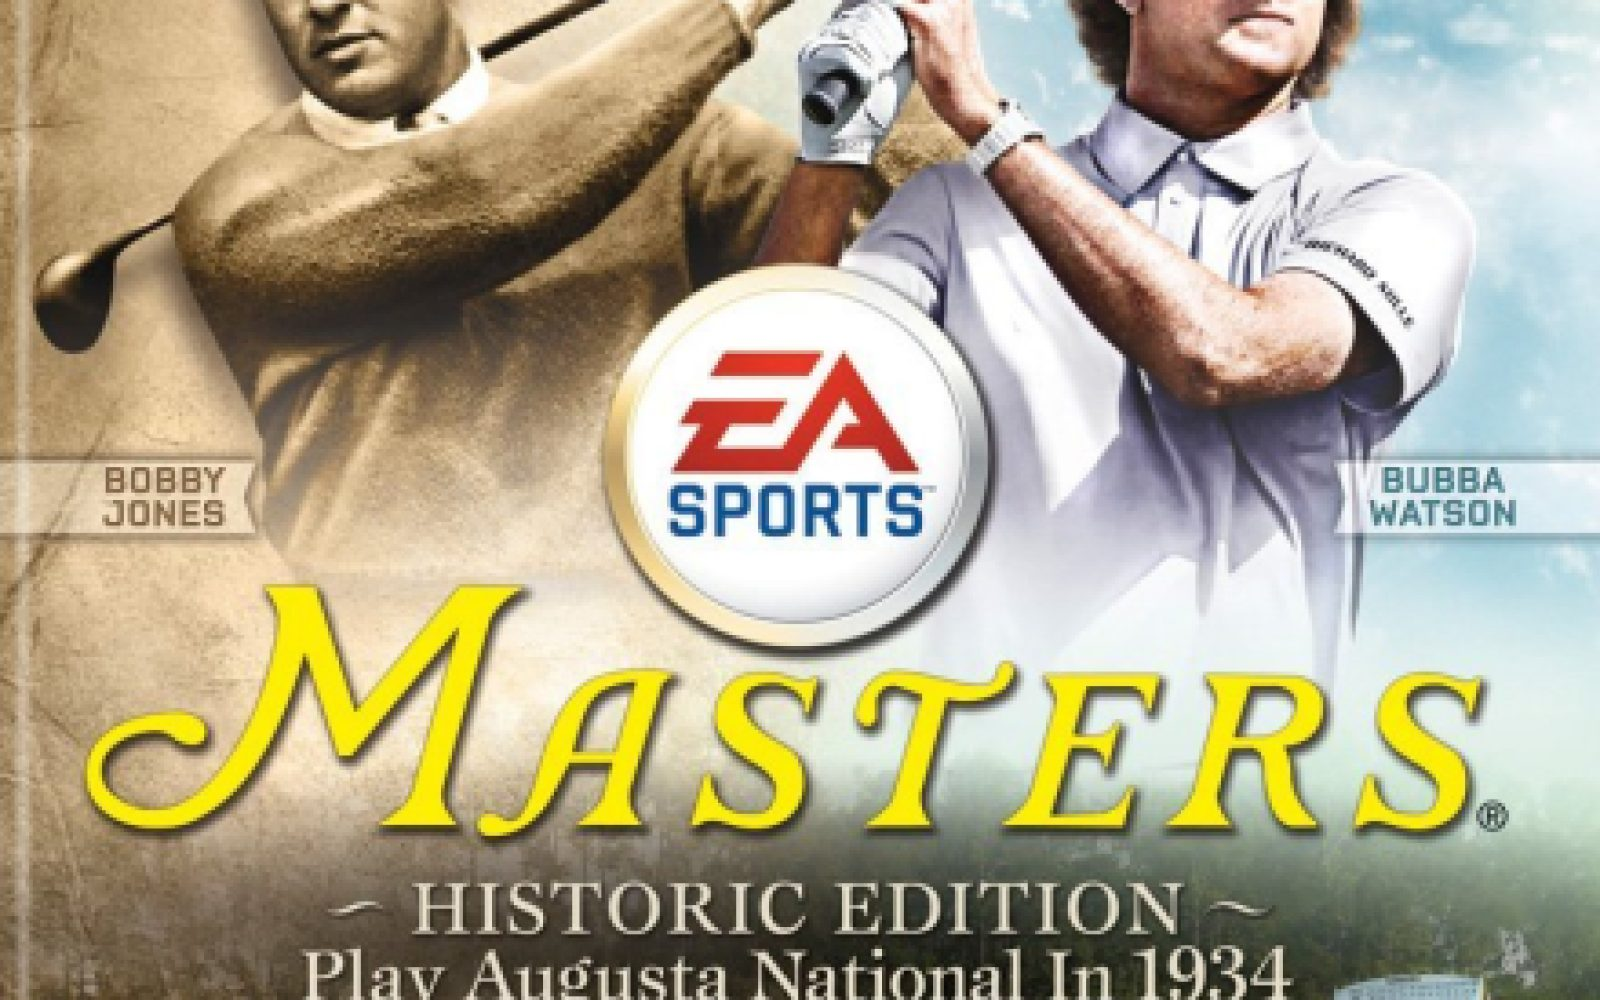 Game/App Deals: Tiger Woods 14 Historic Edition $10, Xbox 360 Kinect